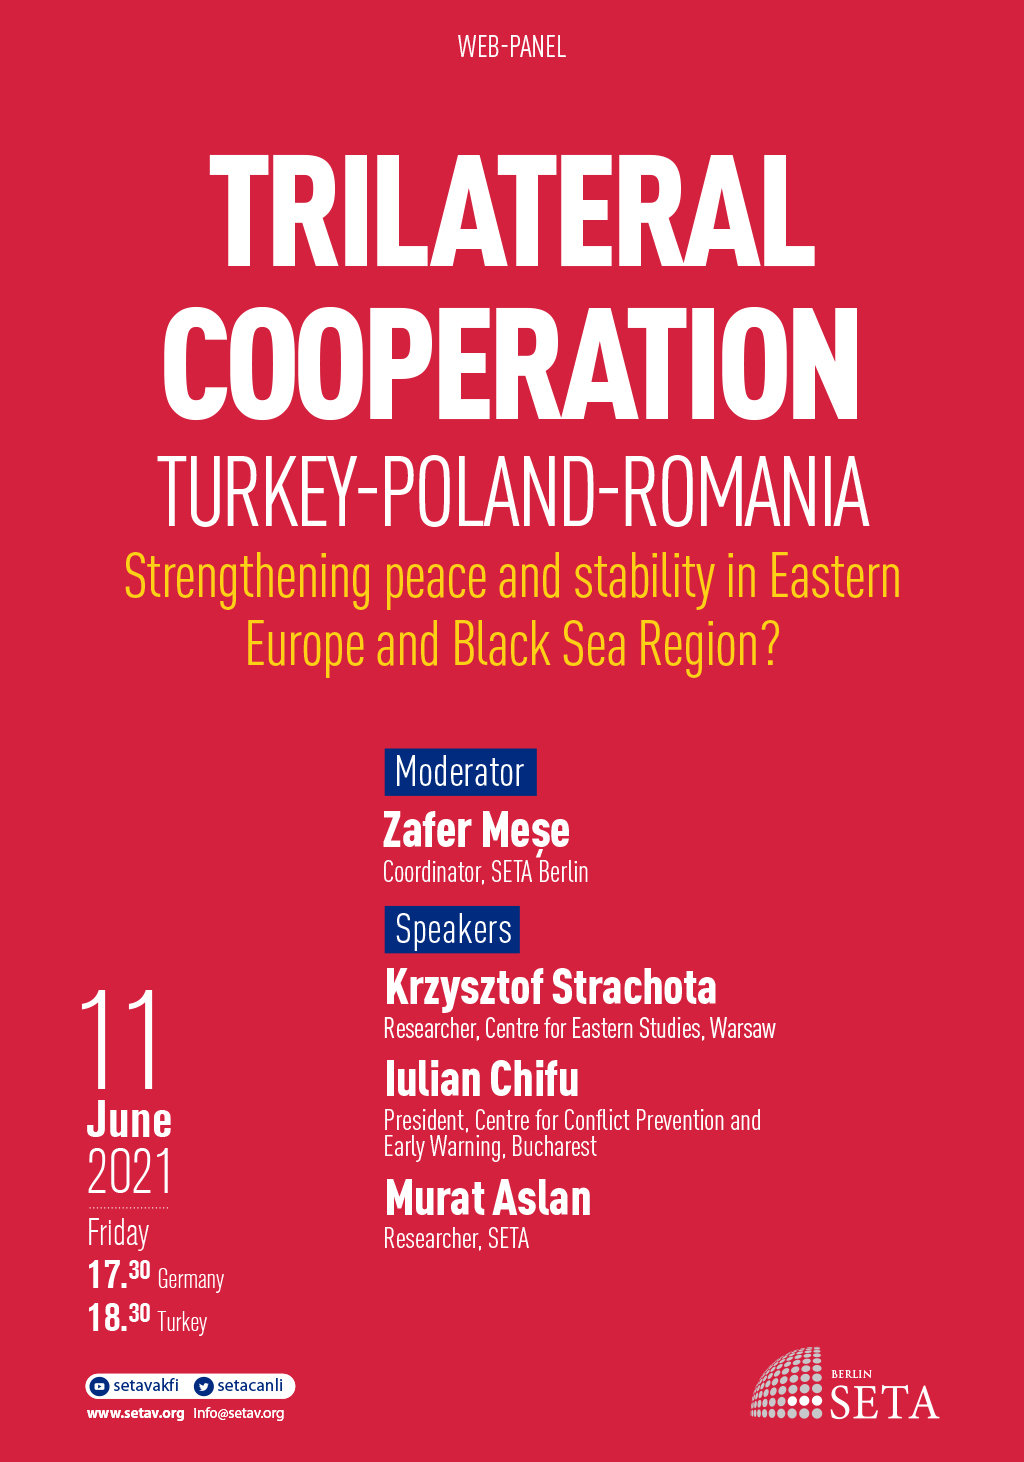 Web Panel: Trialteral Cooperation Turkey-Poland-Romania | Strengthening peace and stability in Eastern Europe and Black Sea Region